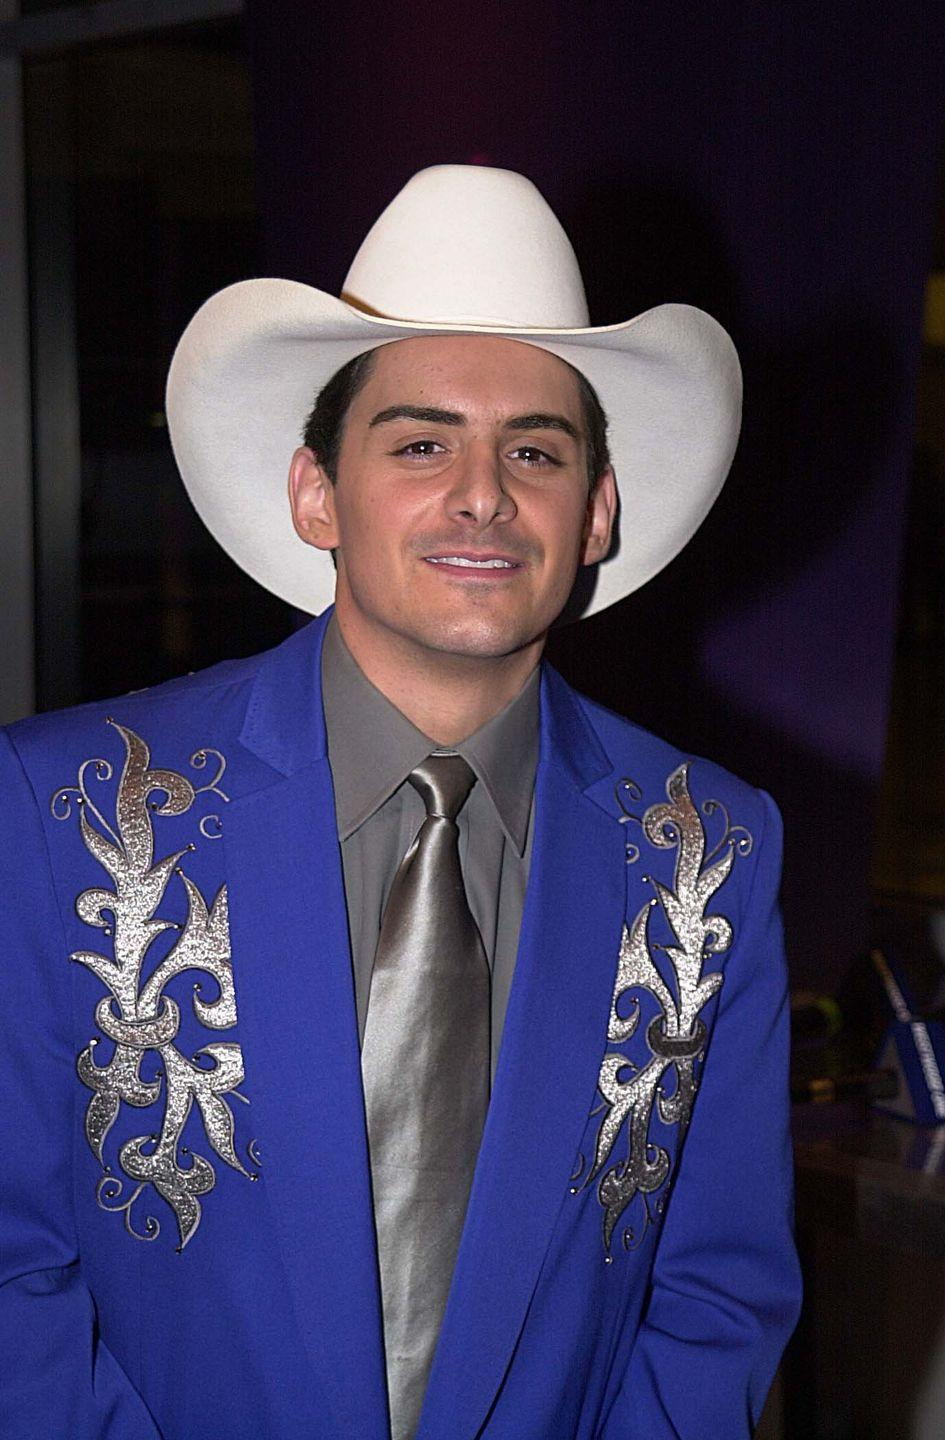 <p>Yee-<em>freaking</em>-HAW to Brad's embroidered blue blazer and silver metallic tie. Like <em>Westworld</em> but more technicolor-y.</p>